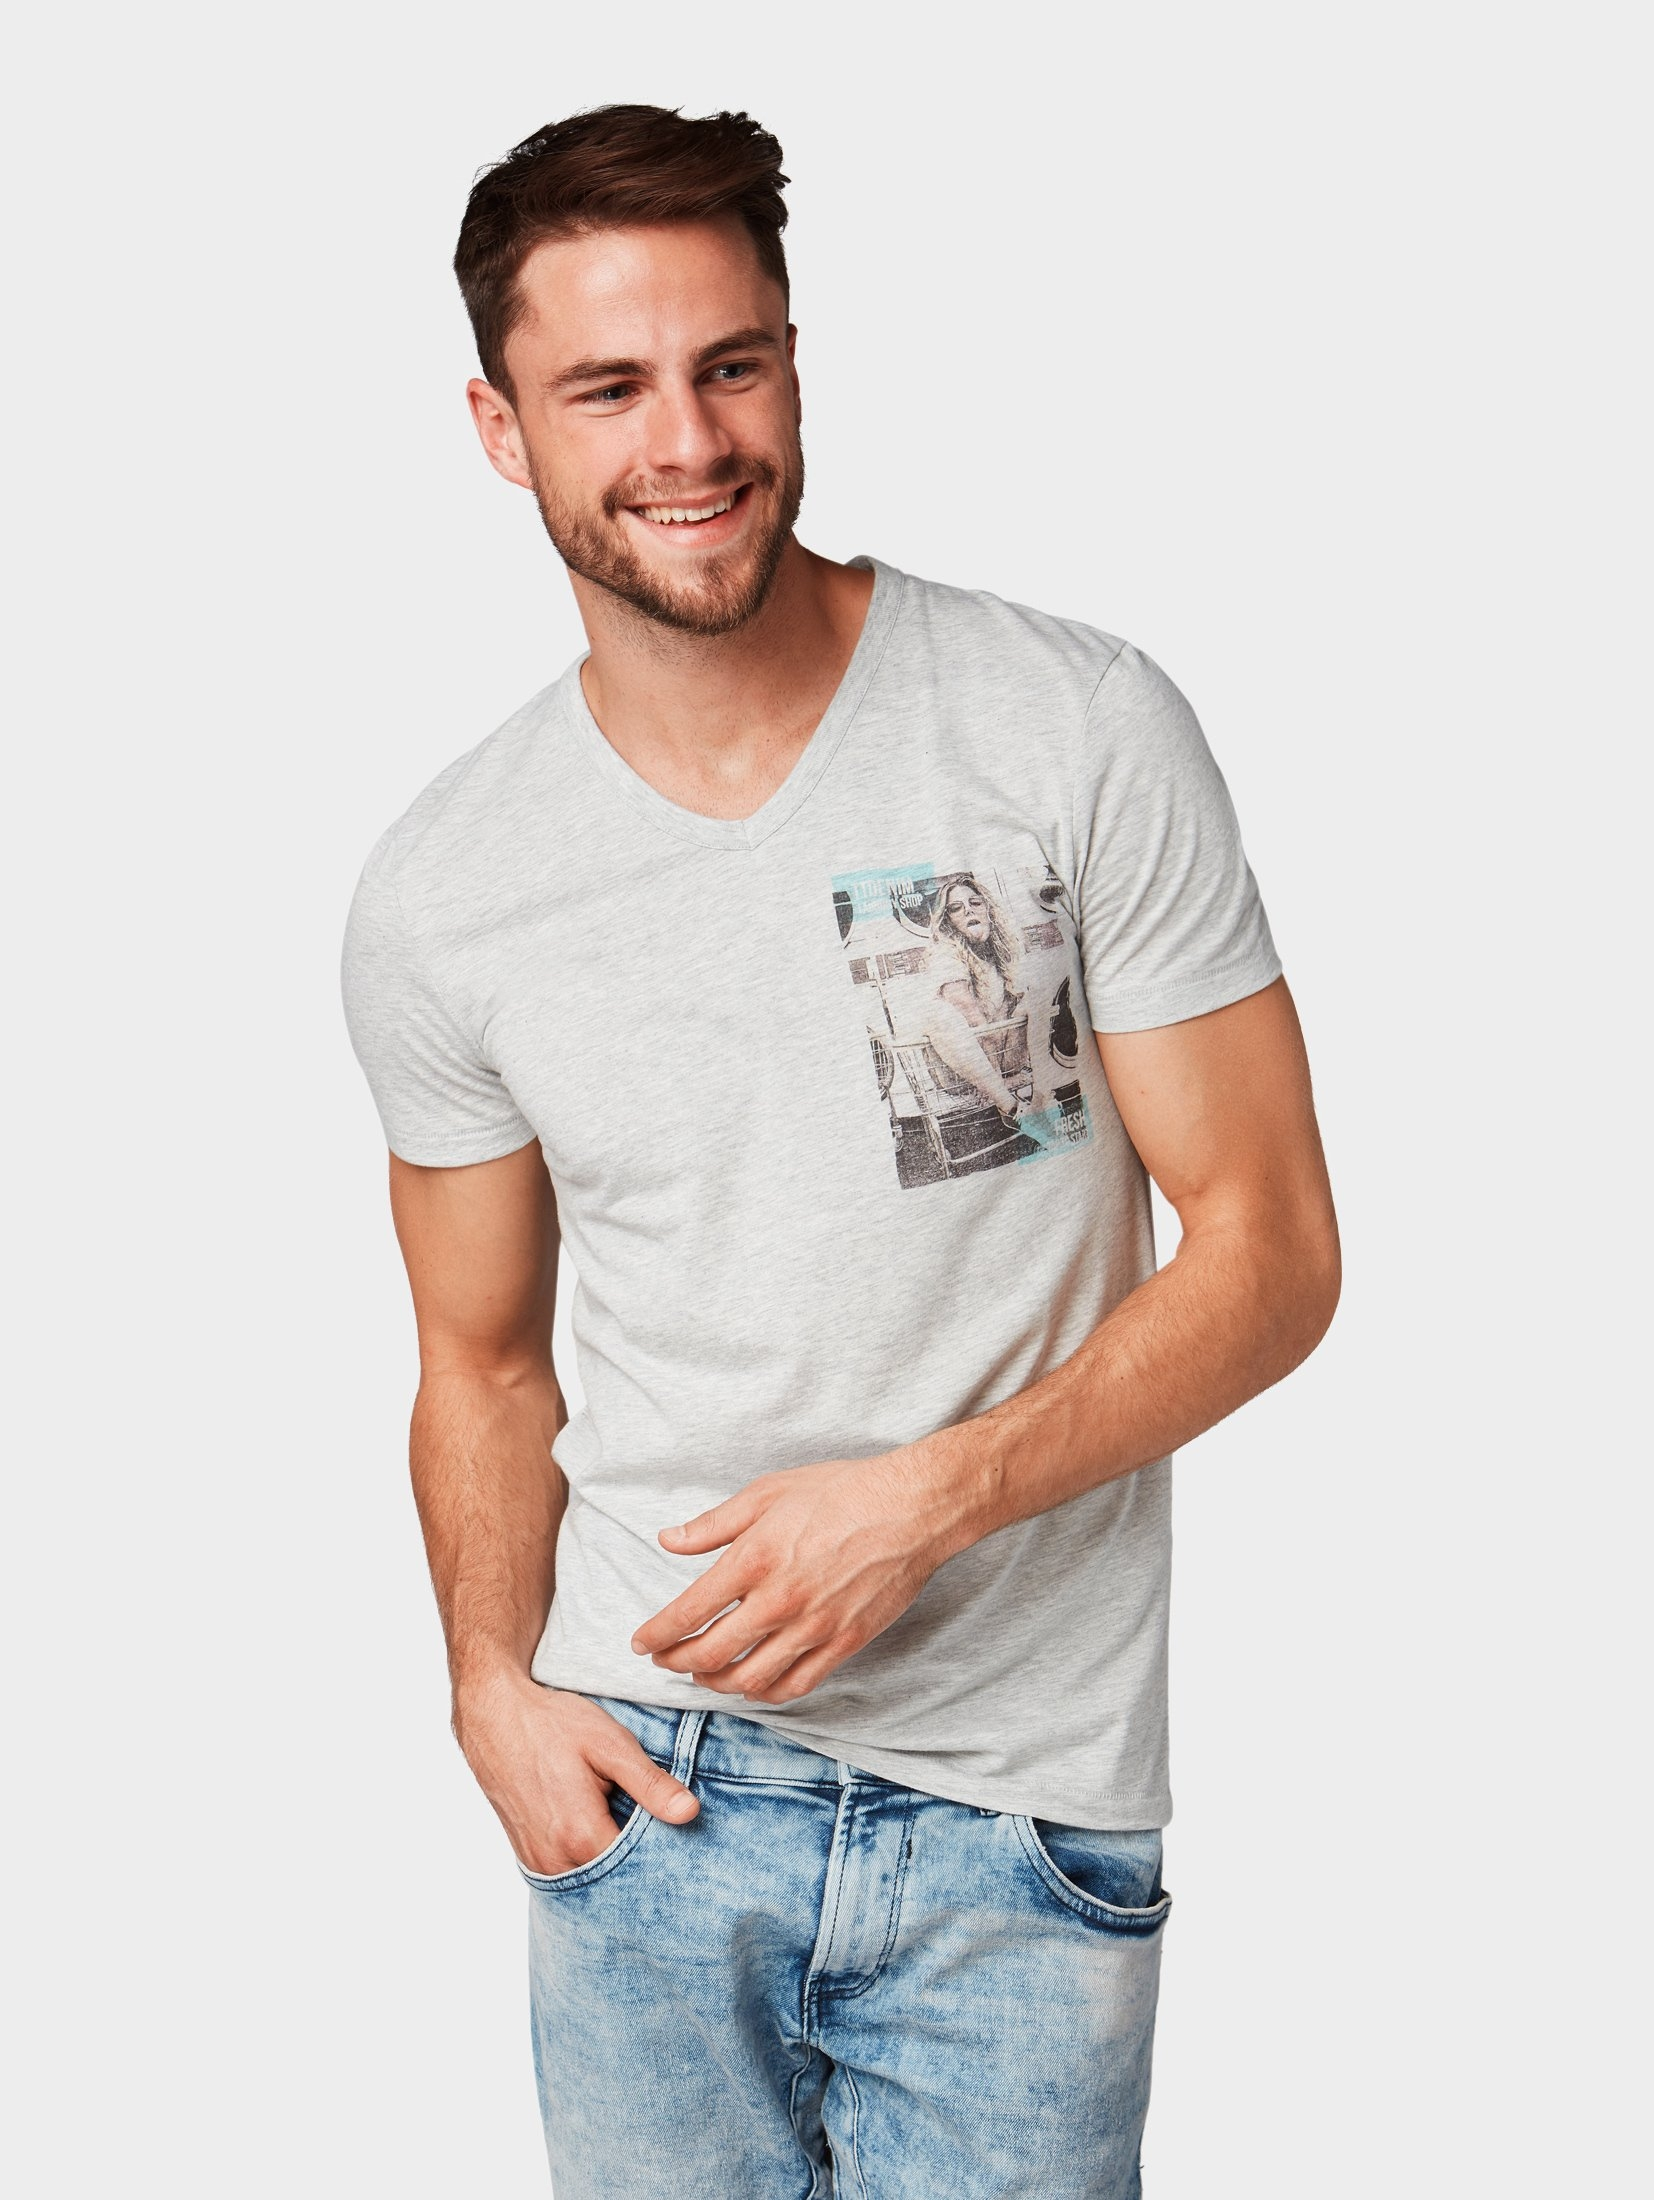 T shirt Je Met Fotoprint Tailor Denim Tom Bij shirtt Vind R34A5jLq